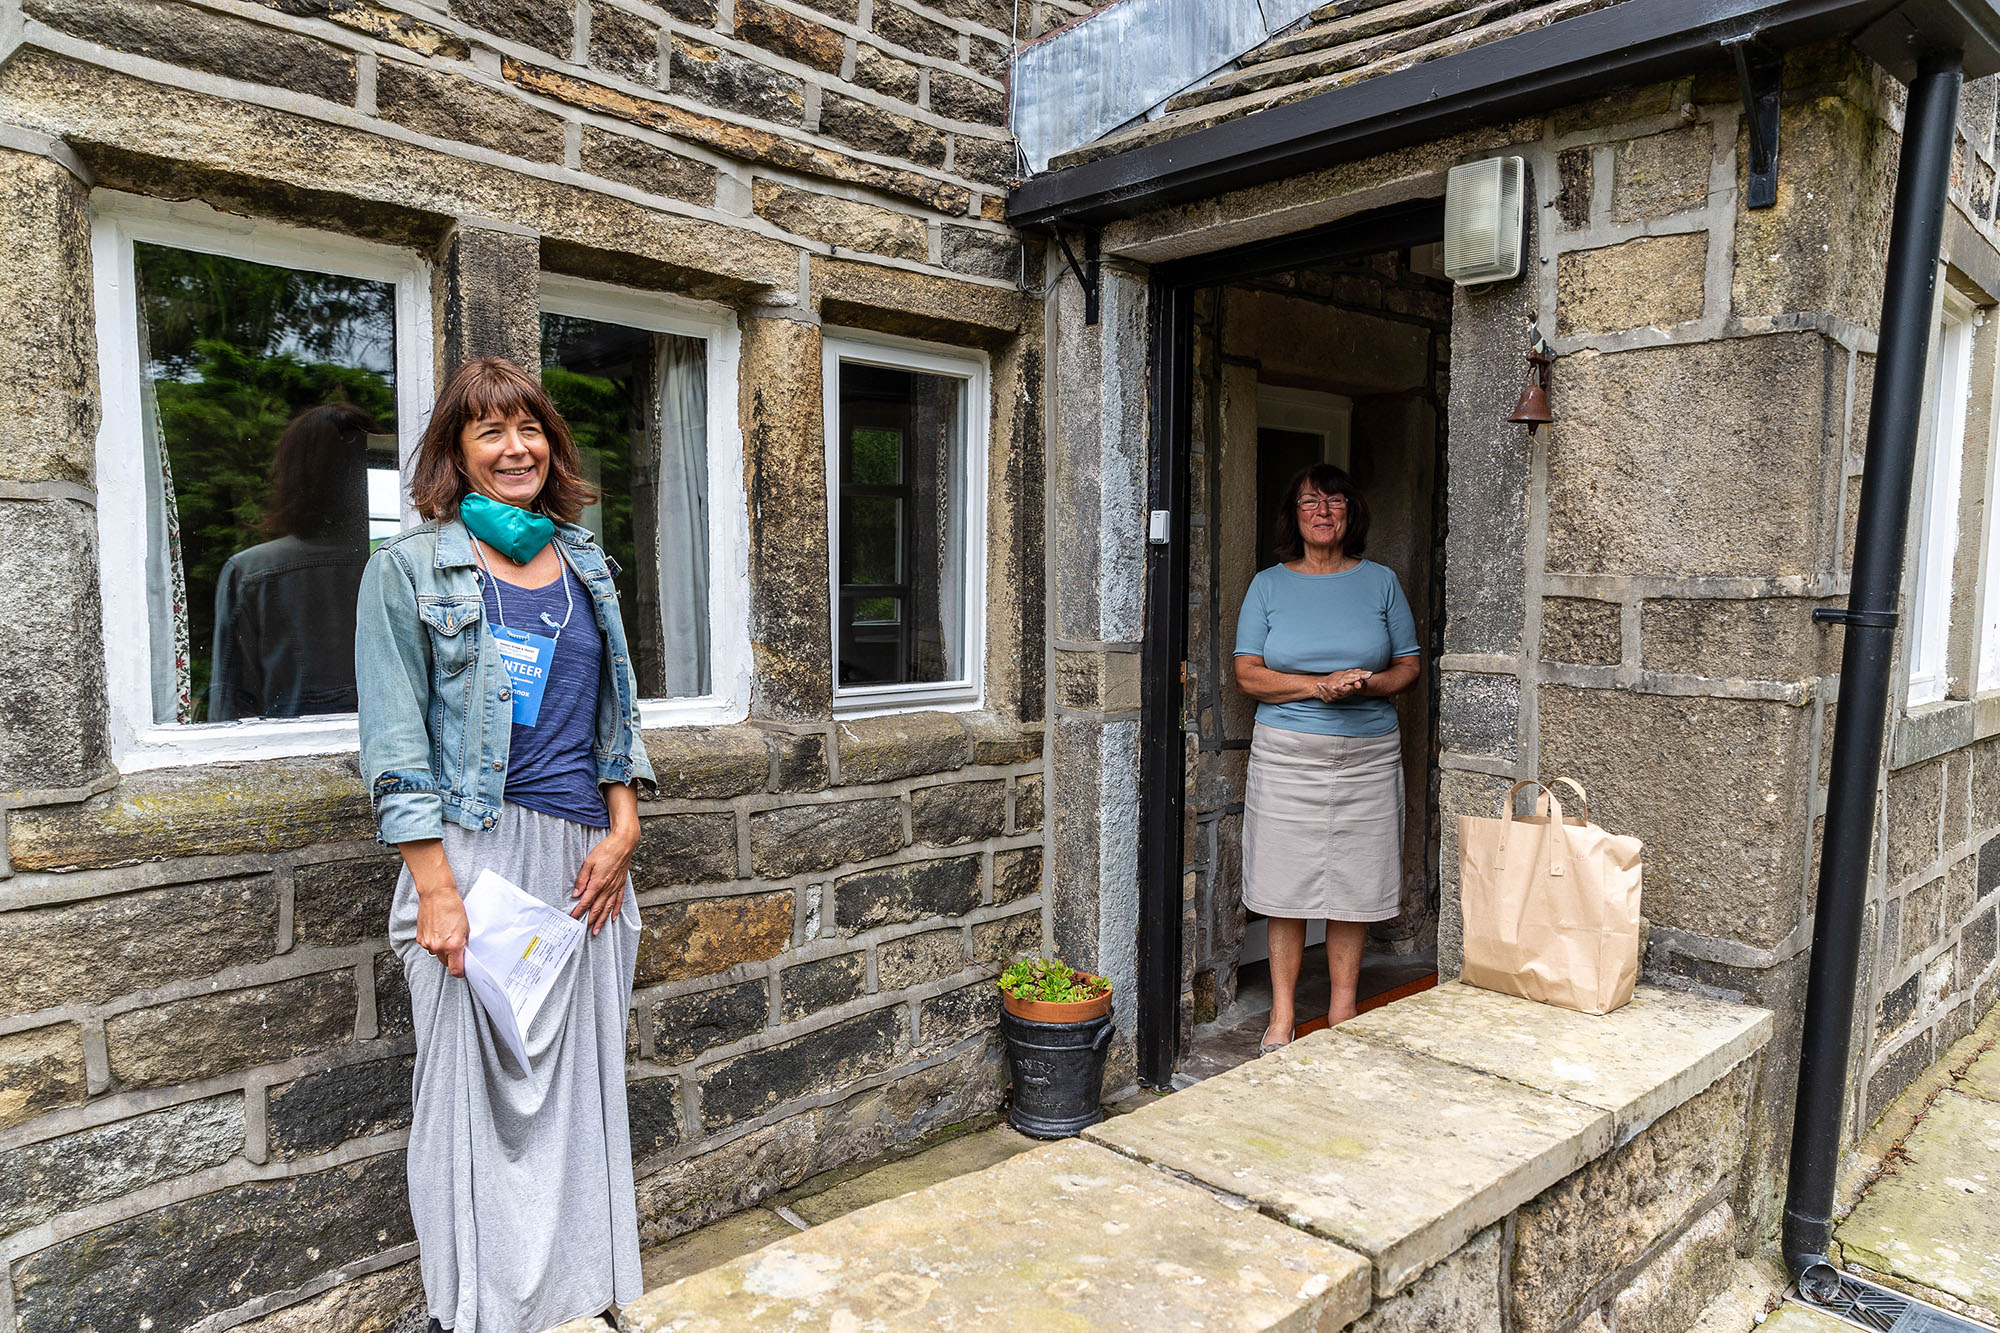 Food share scheme launched with Mytholroyd Co-op